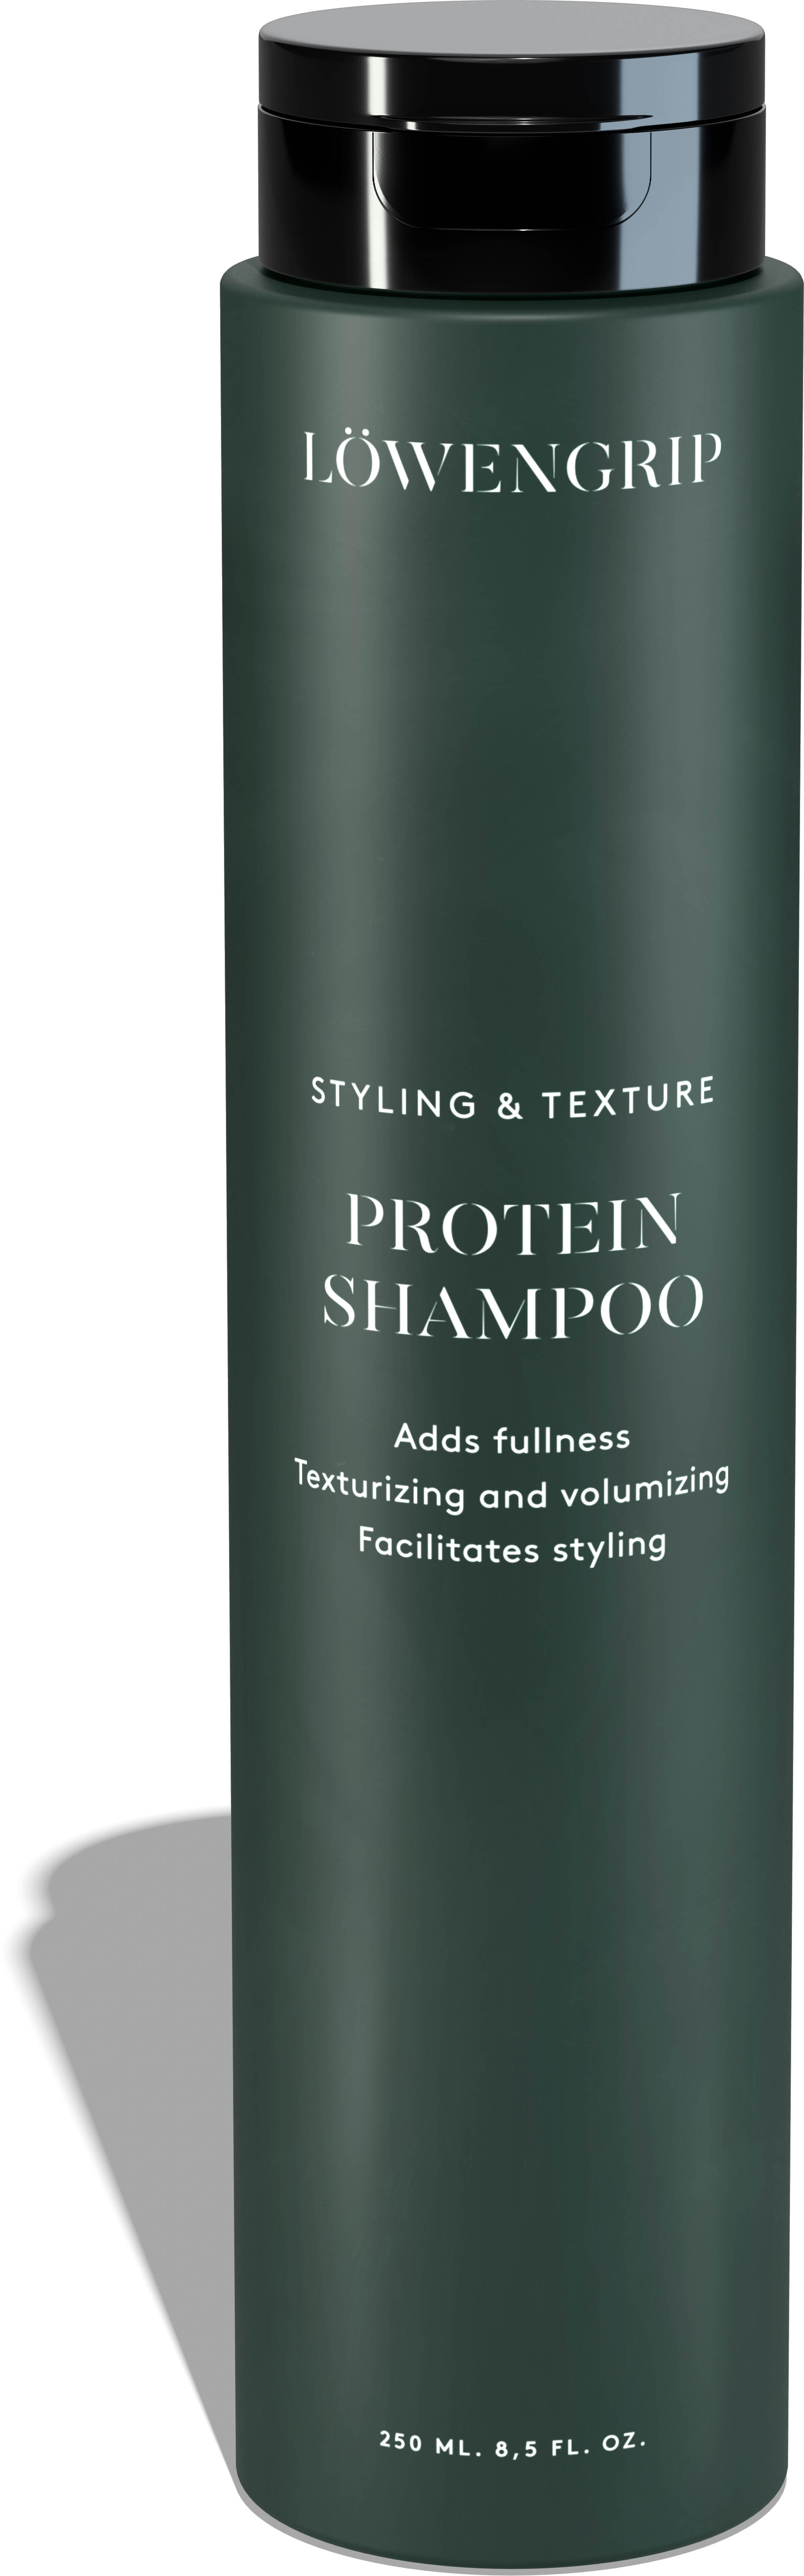 Styling & Texture - Protein Shampoo 250 ml